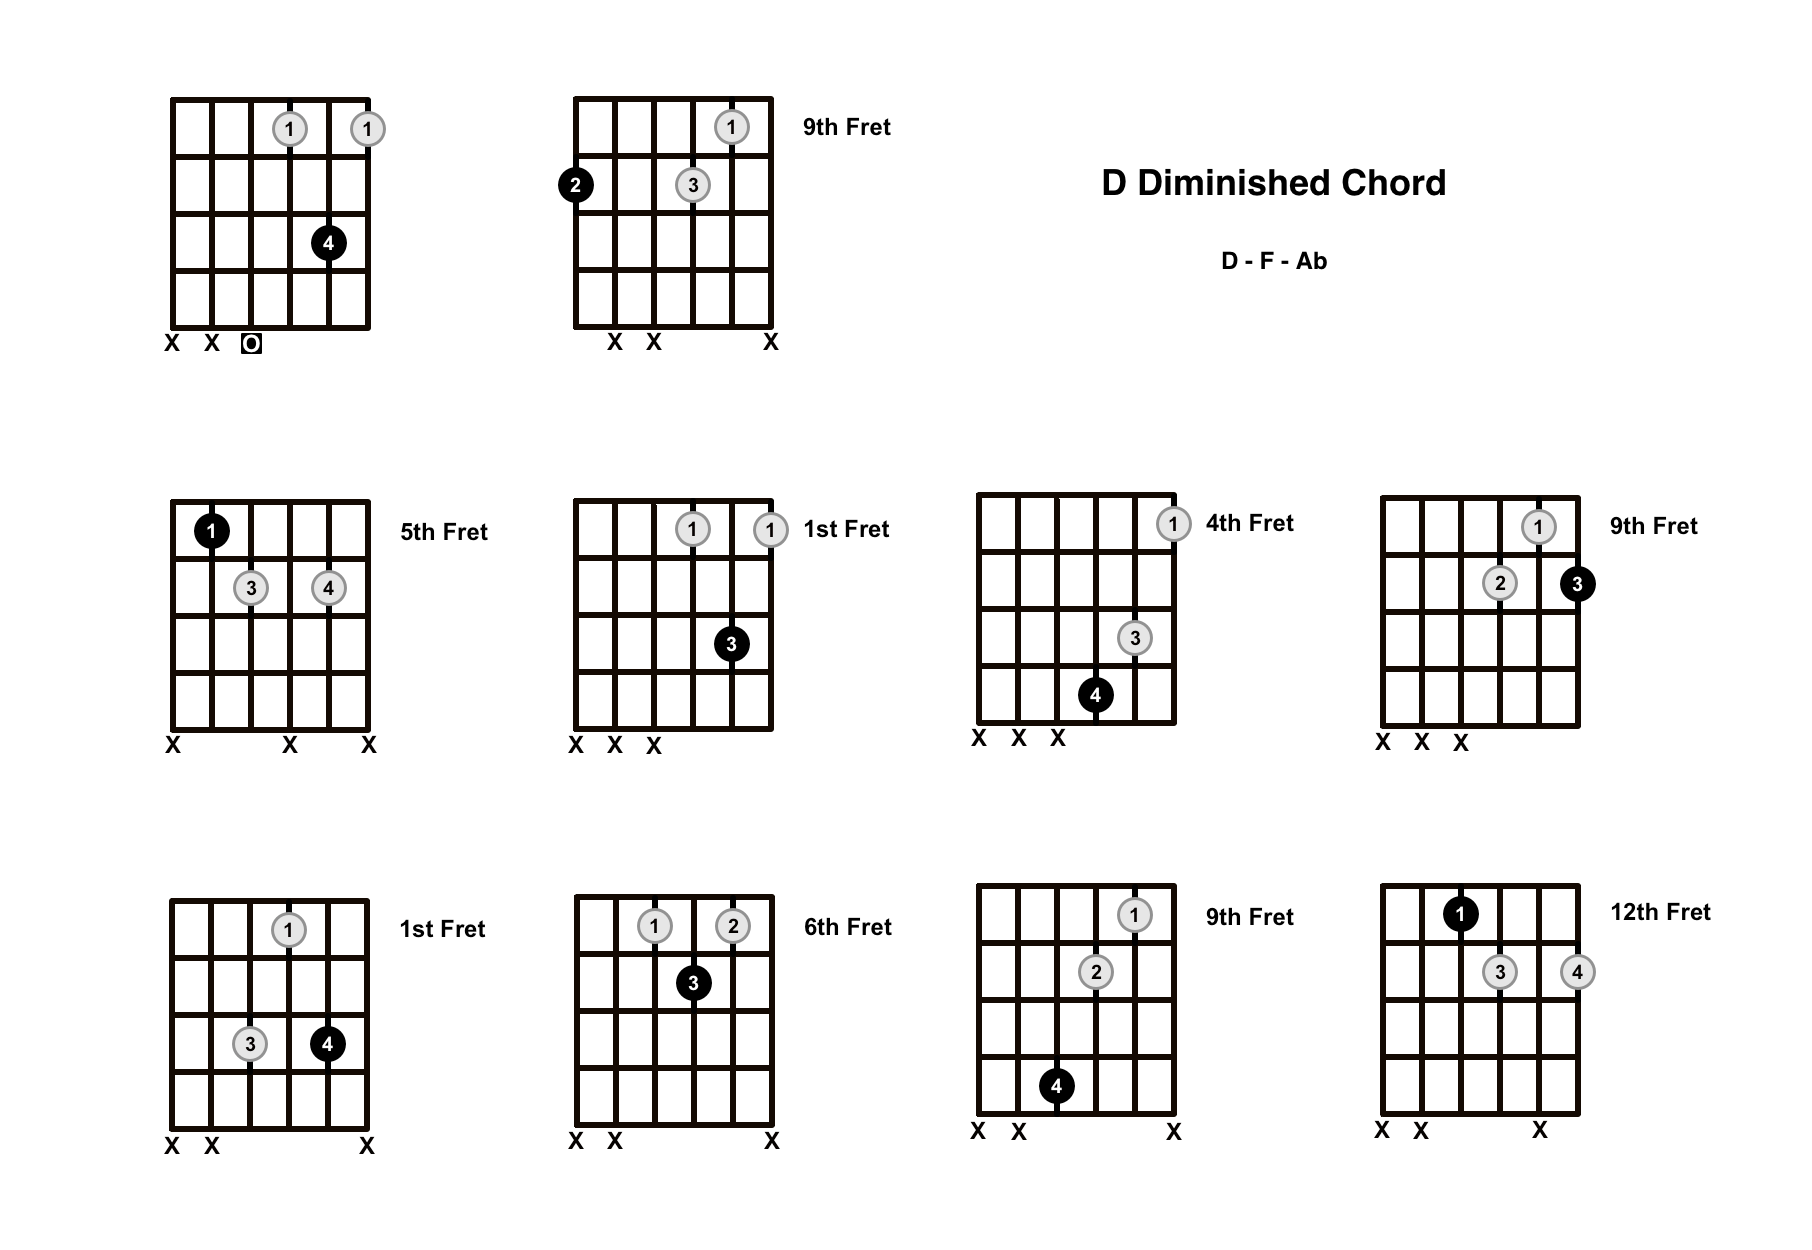 D Diminished Chord on the Guitar (D dim) – Diagrams, Finger Positions, Theory